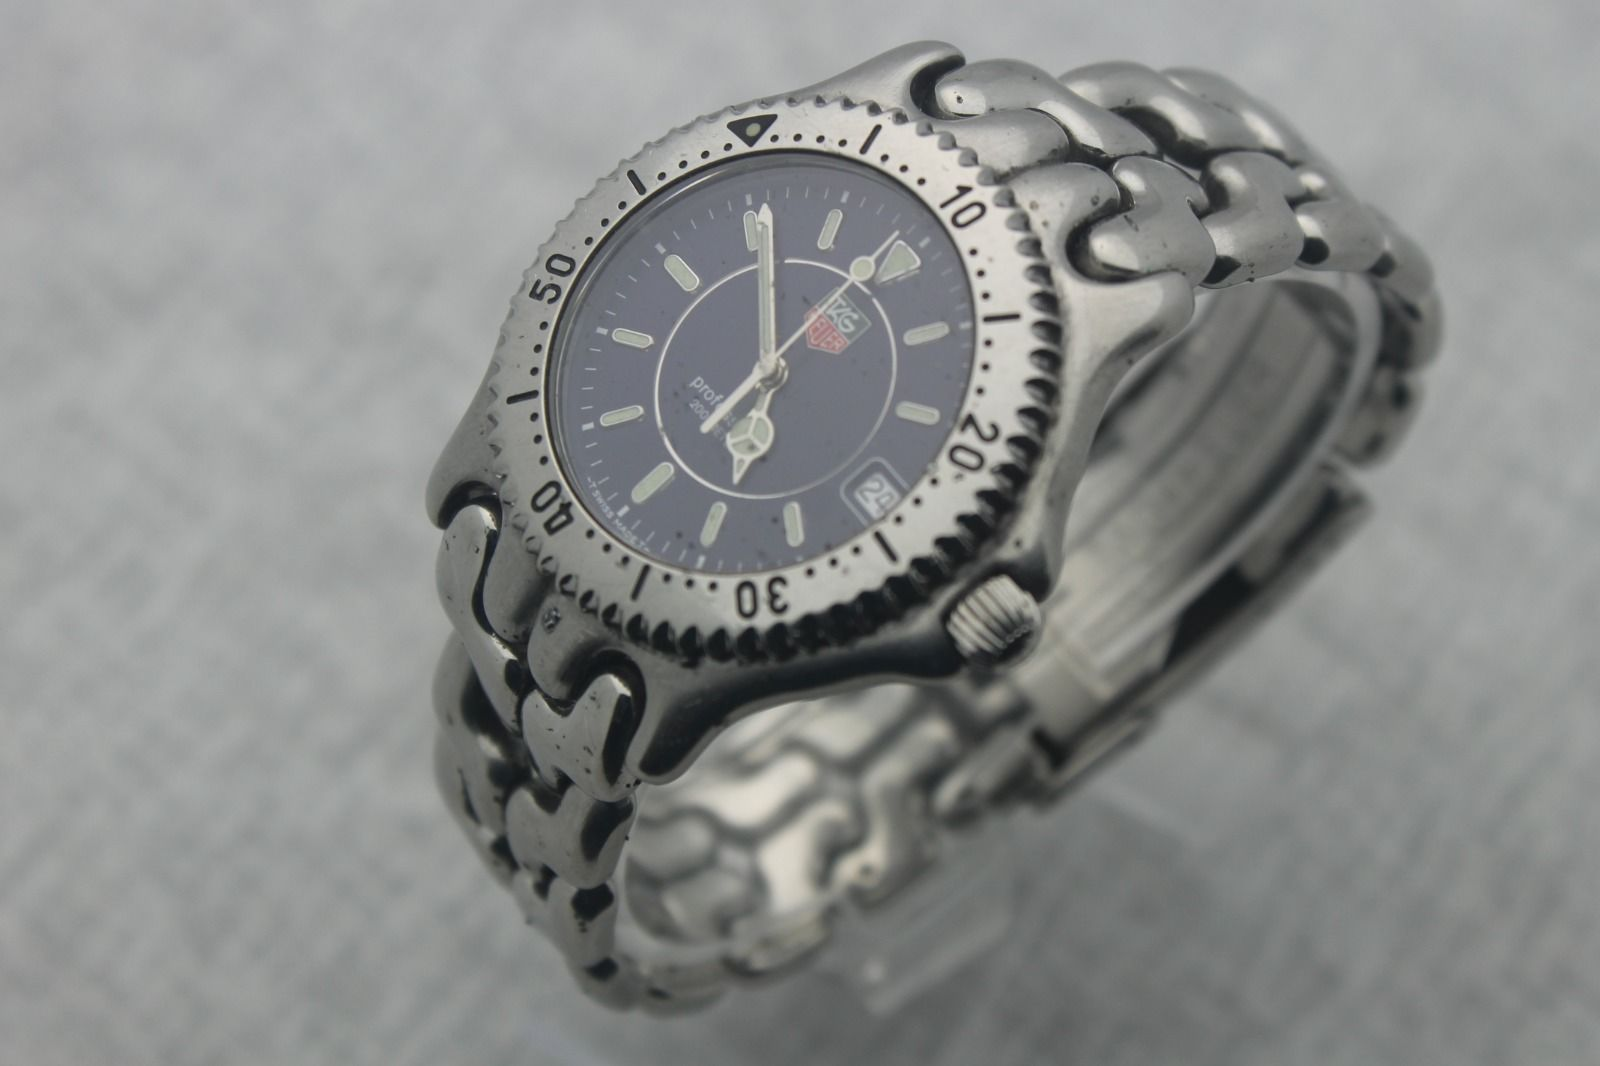 Tag heuer professional sel quartz ref wg111a stainless steel 200m diver 39 s watch ebay for Tag heuer divers watch